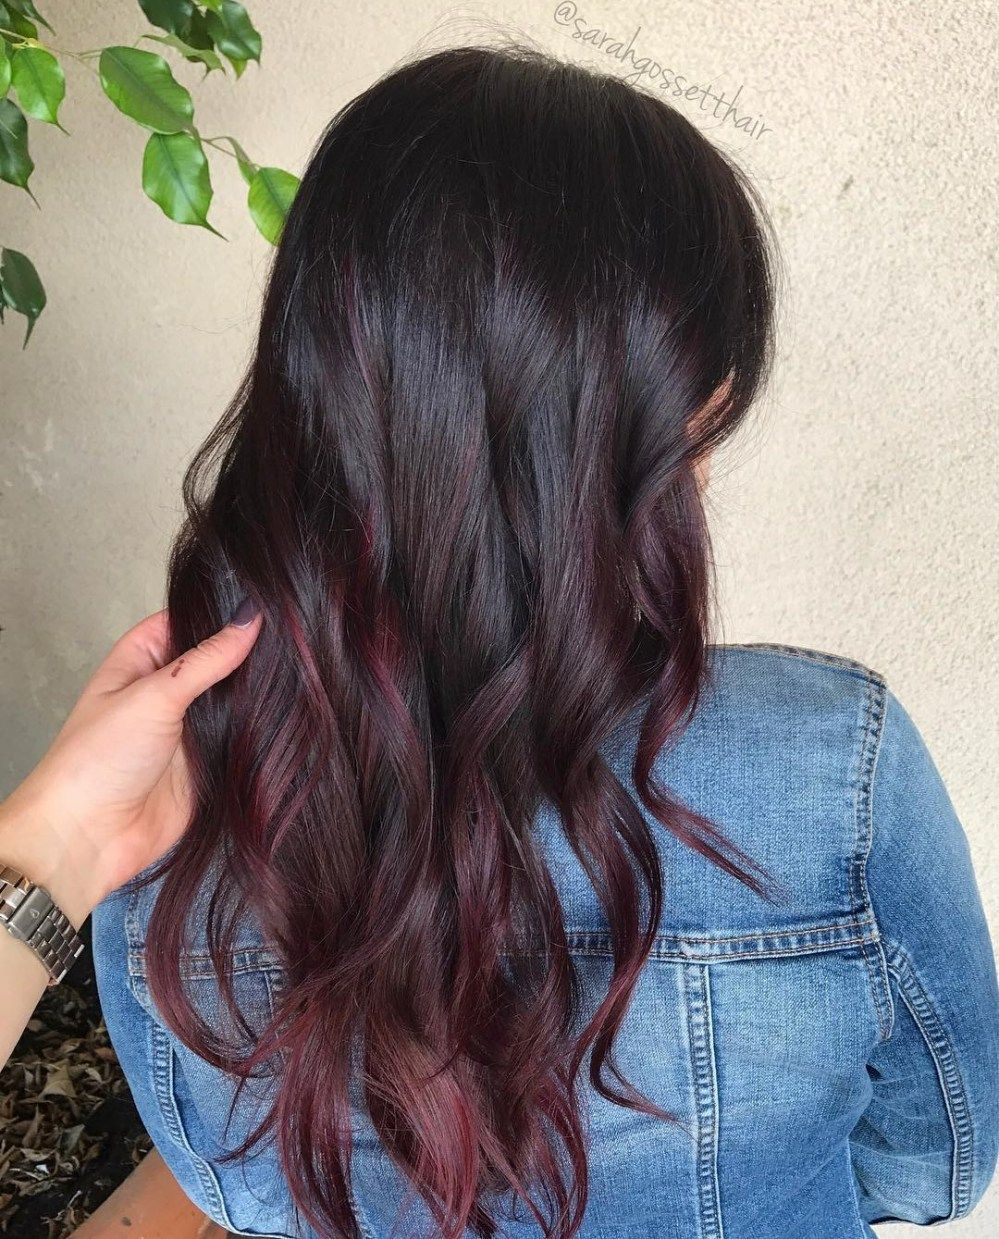 45 Shades Of Burgundy Hair Dark Burgundy Maroon Burgundy With Red Purple And Brown Highlights In 2020 Burgundy Balayage Hair Color Burgundy Burgundy Hair